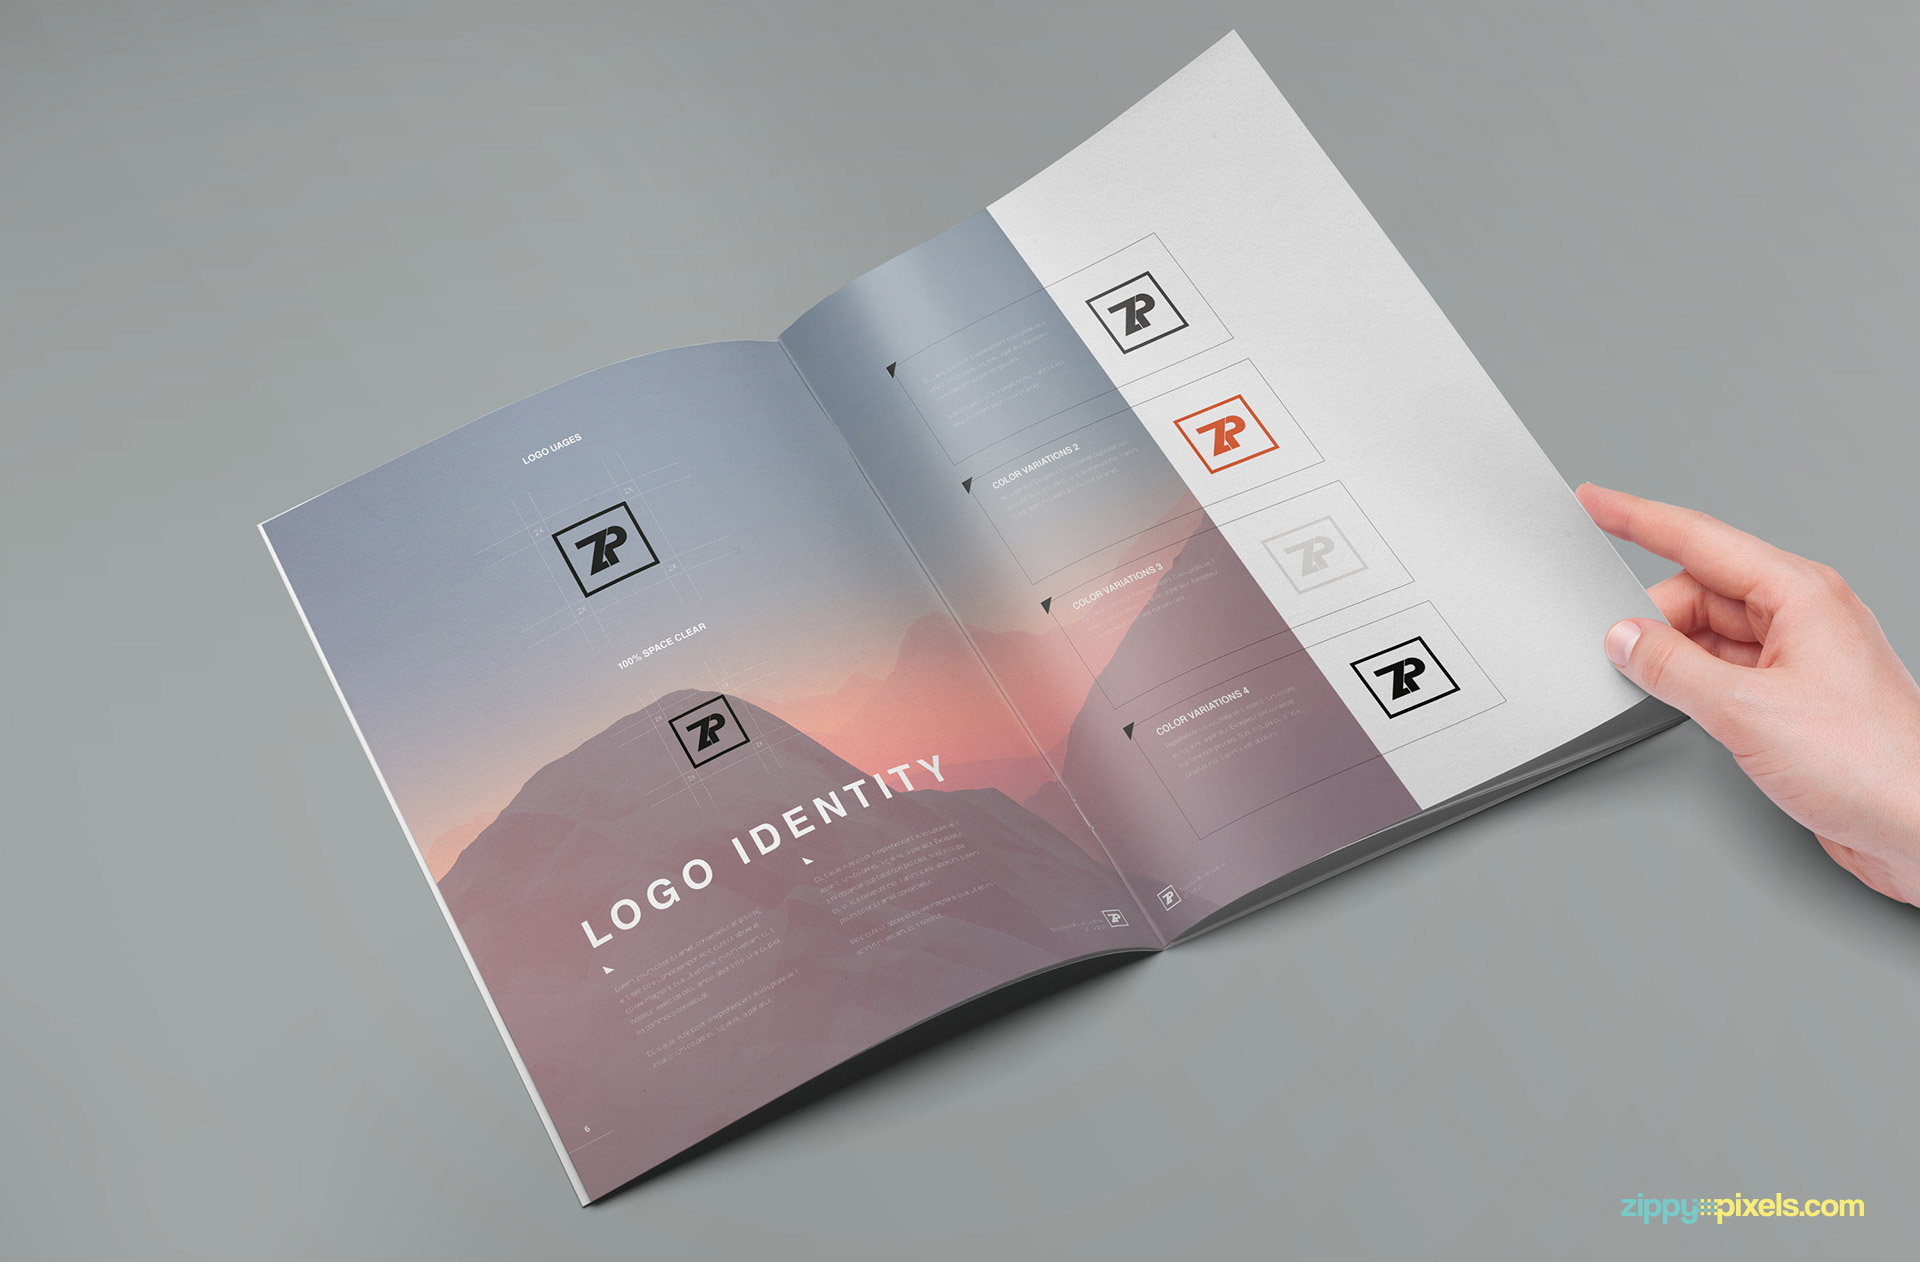 The muse brand guide template zippypixels for Free adobe illustrator templates